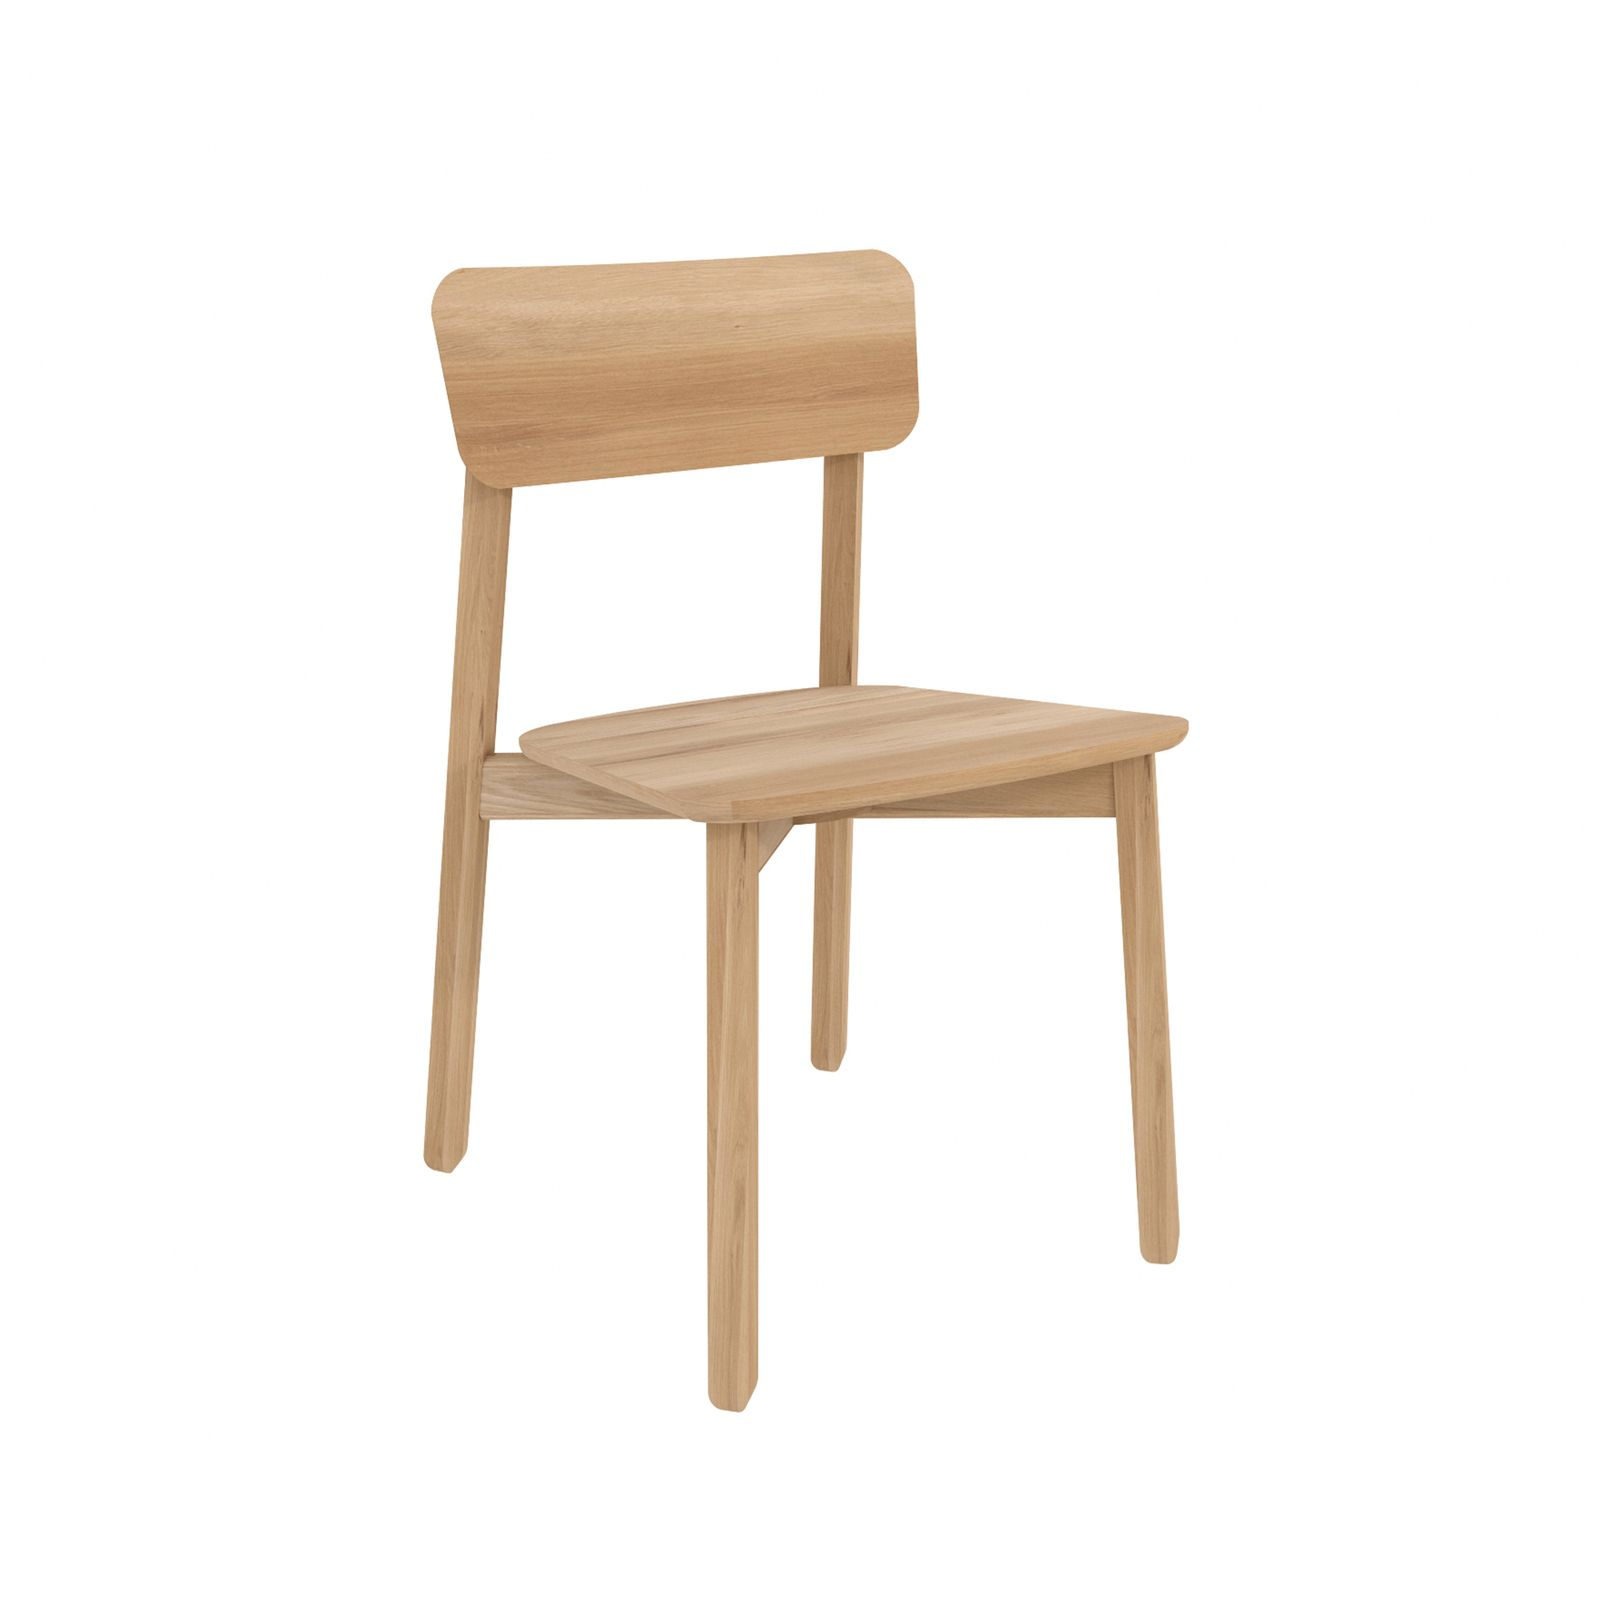 Oak Casale Dining Chair By Ethnicraft Dining Chairs Modern